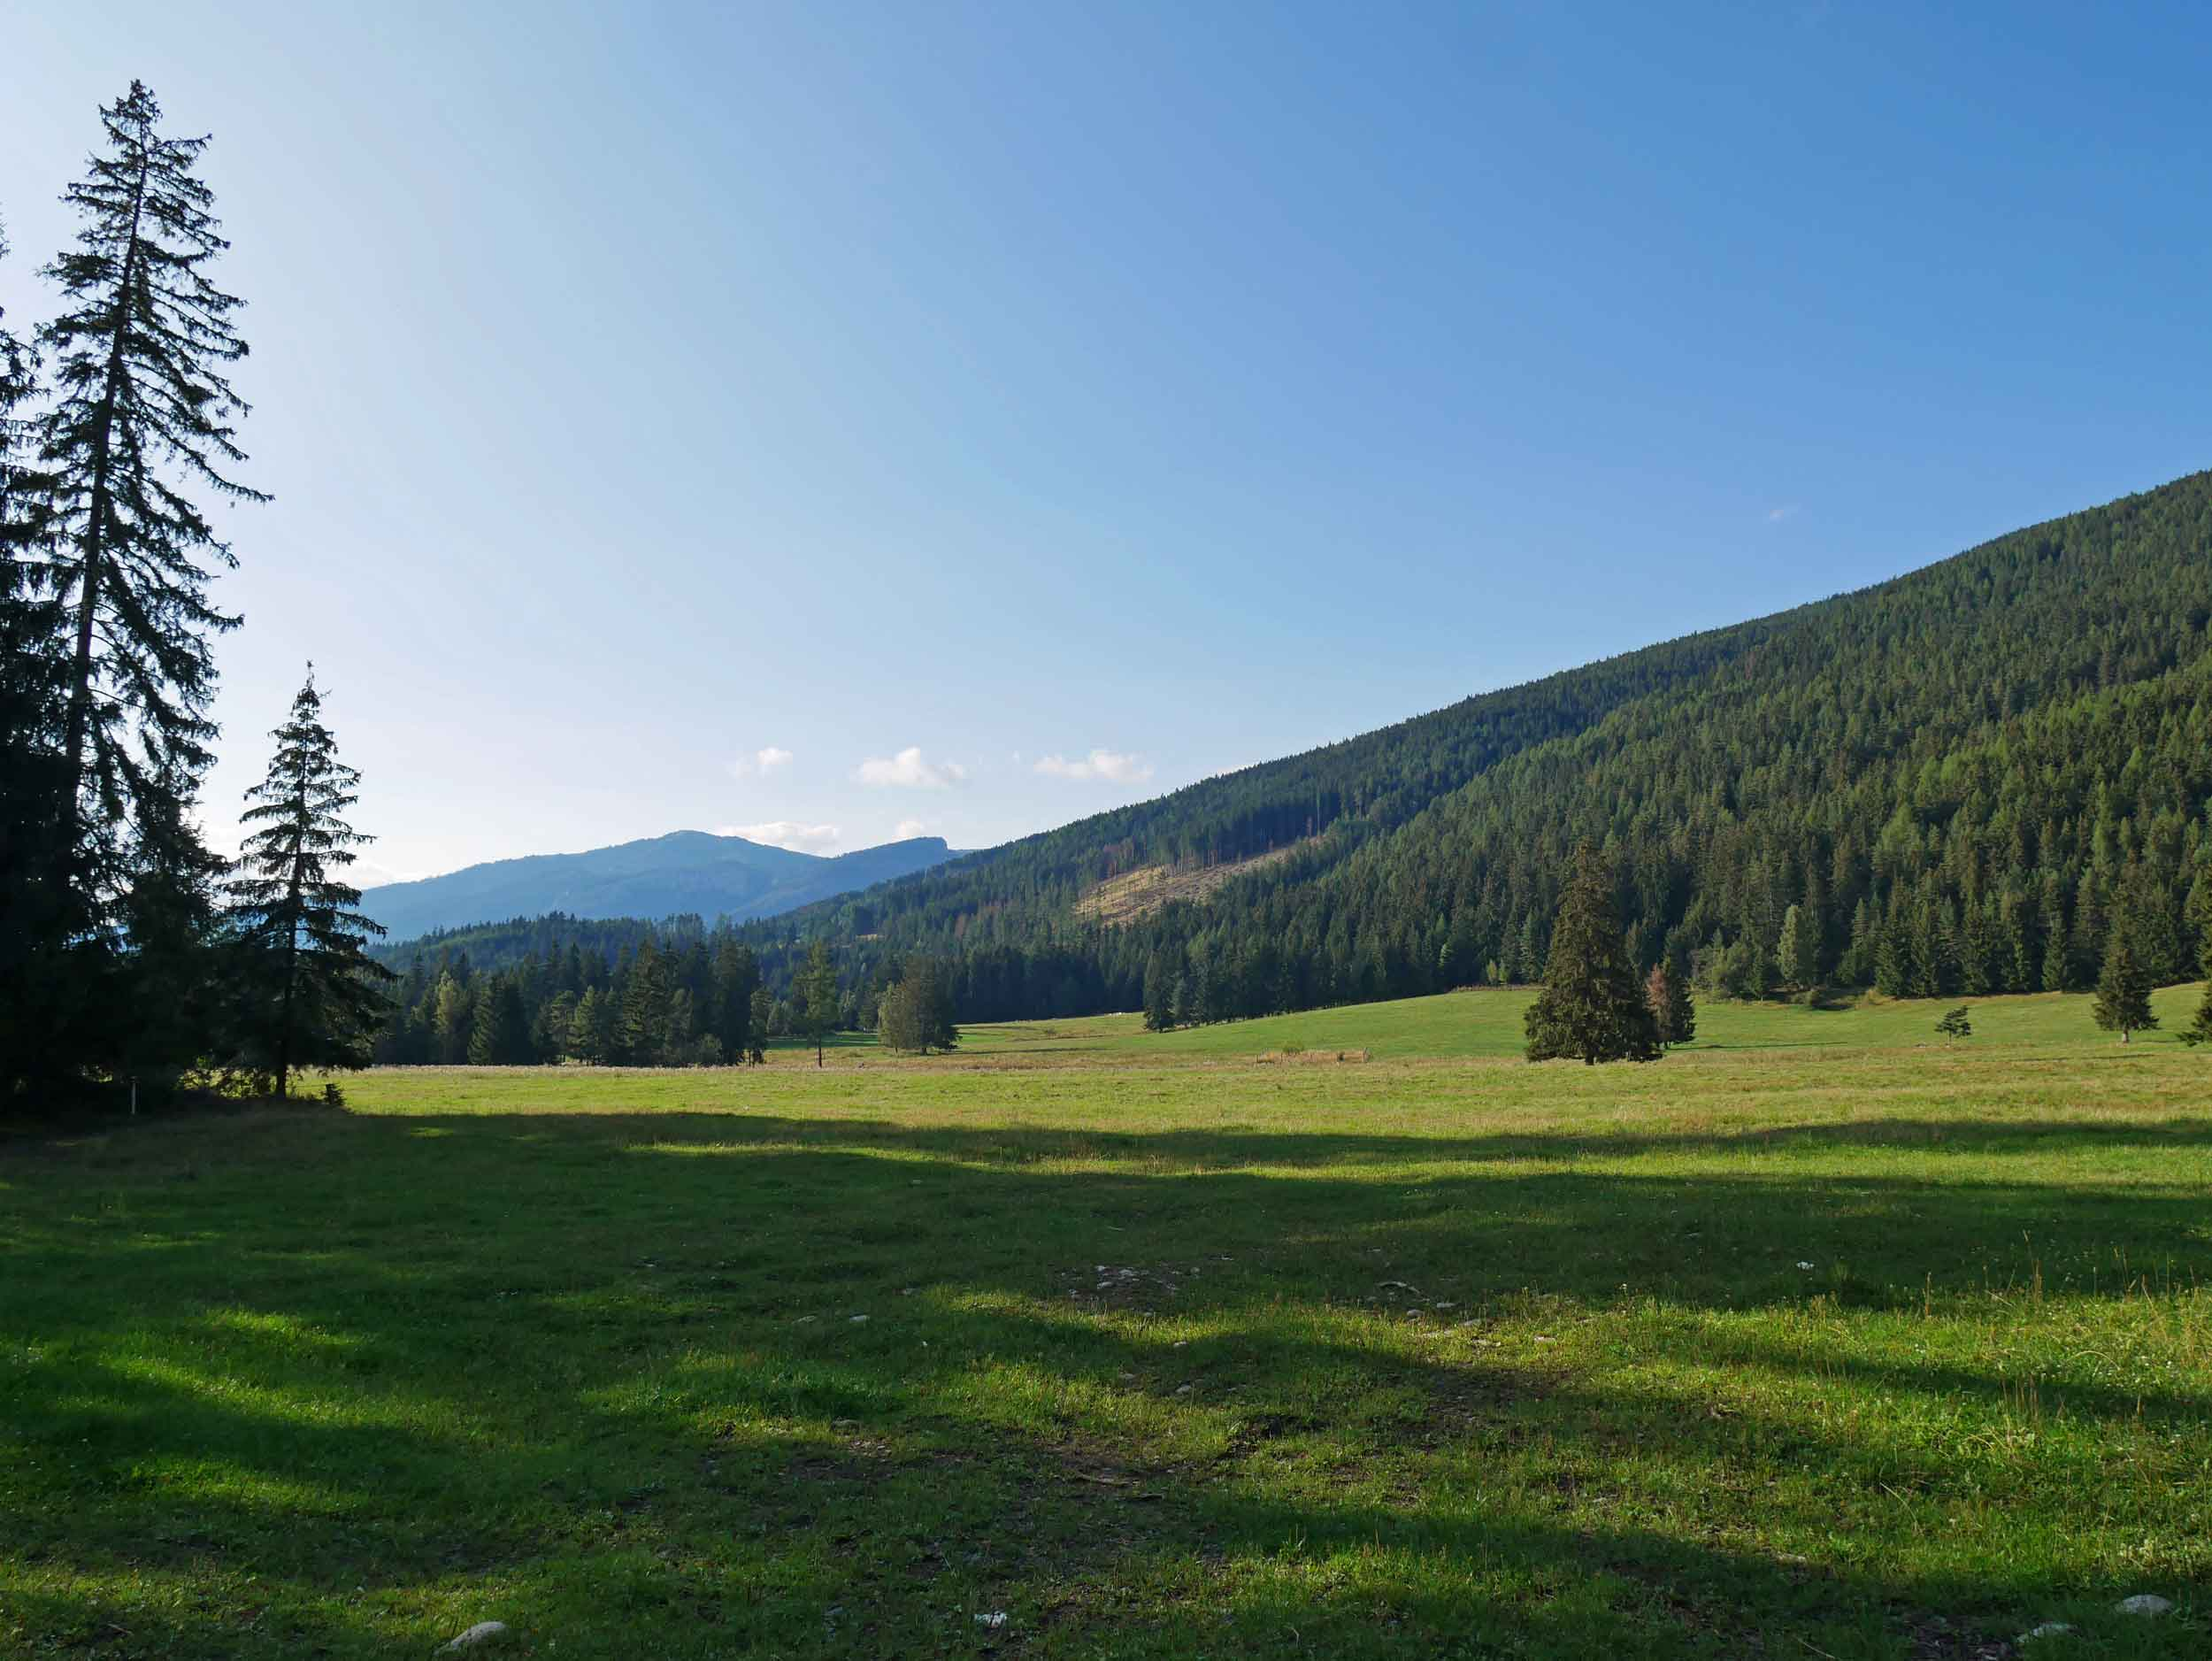 Driving along the country roads in the Western Tatras, we stopped to enjoy the gorgeous verdant valleys.